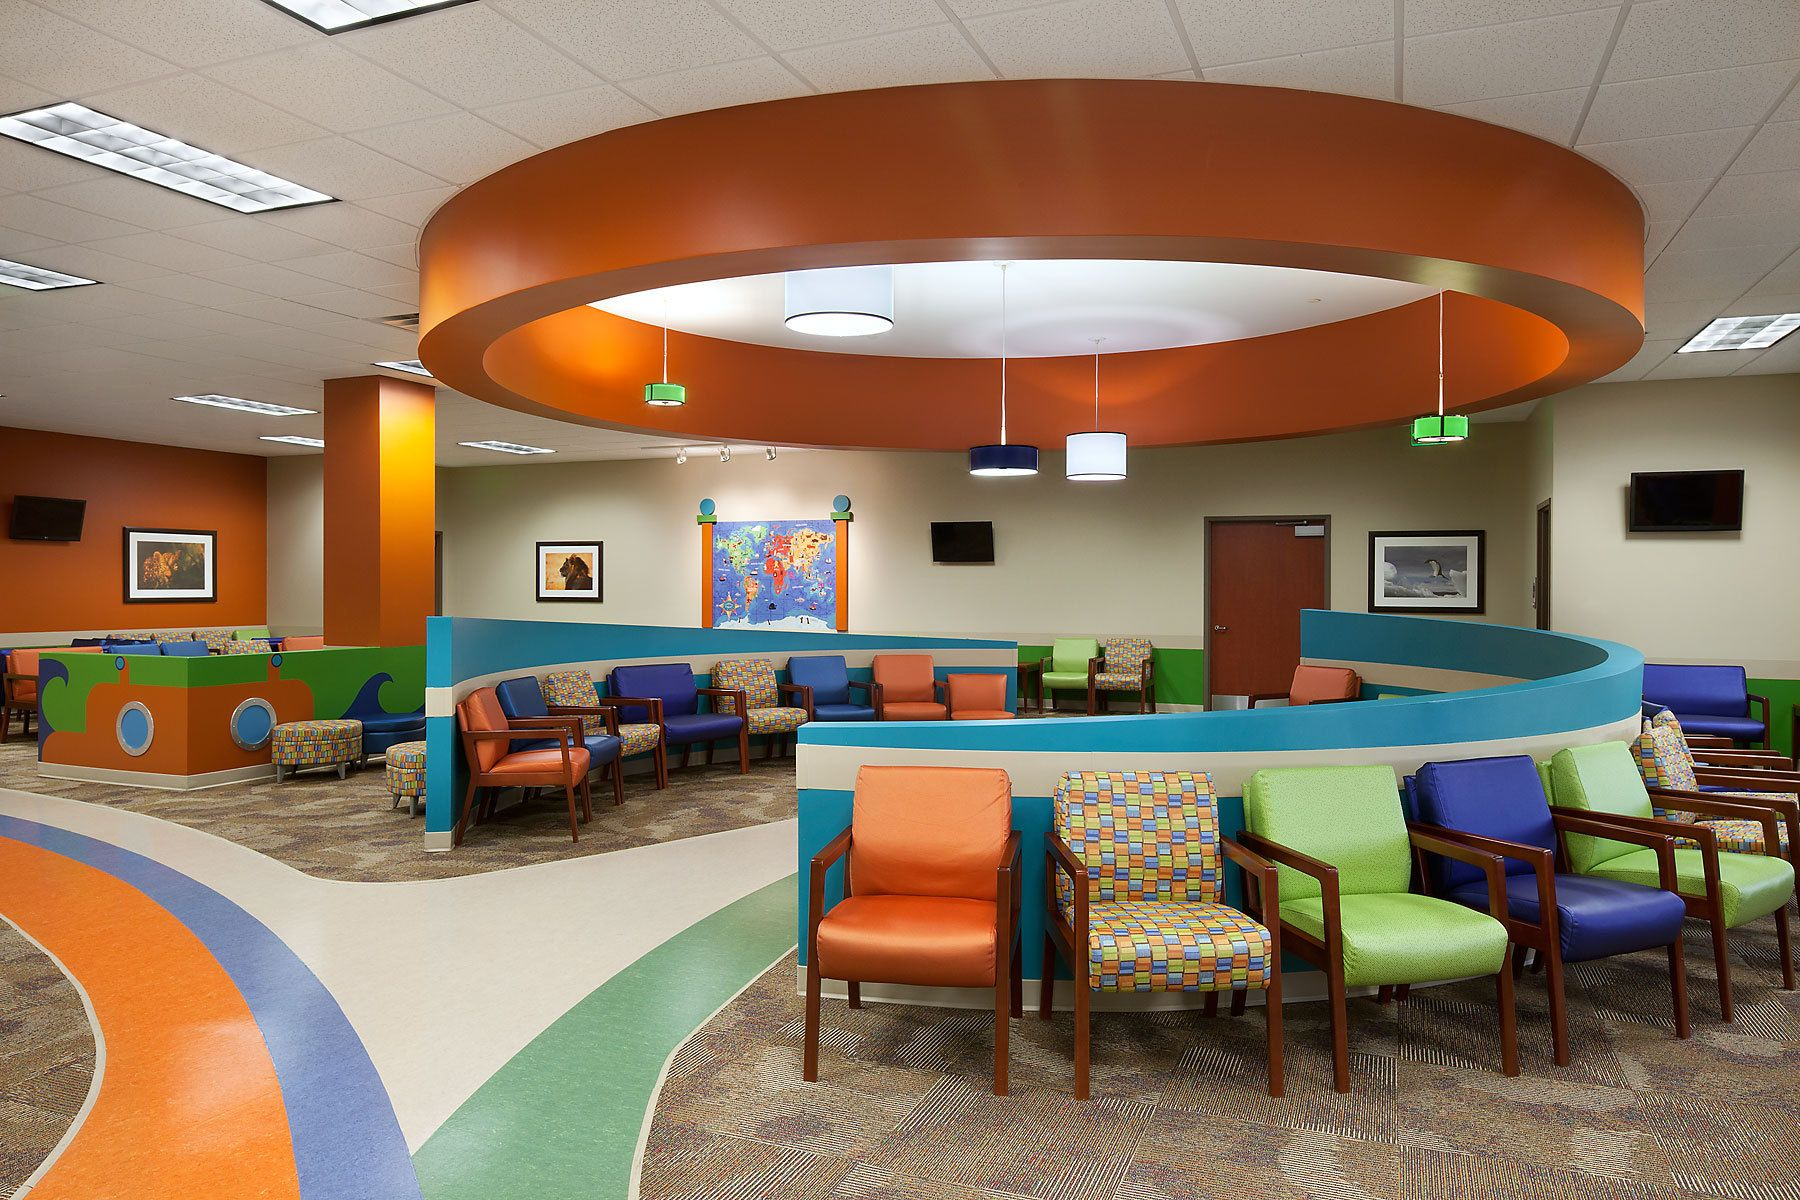 Murfreesboro Medical Clinic | Murfreesboro, TNArchitect - Lyman Davidson Dooley, Inc.General Contractor - Freese Johnson, LLC